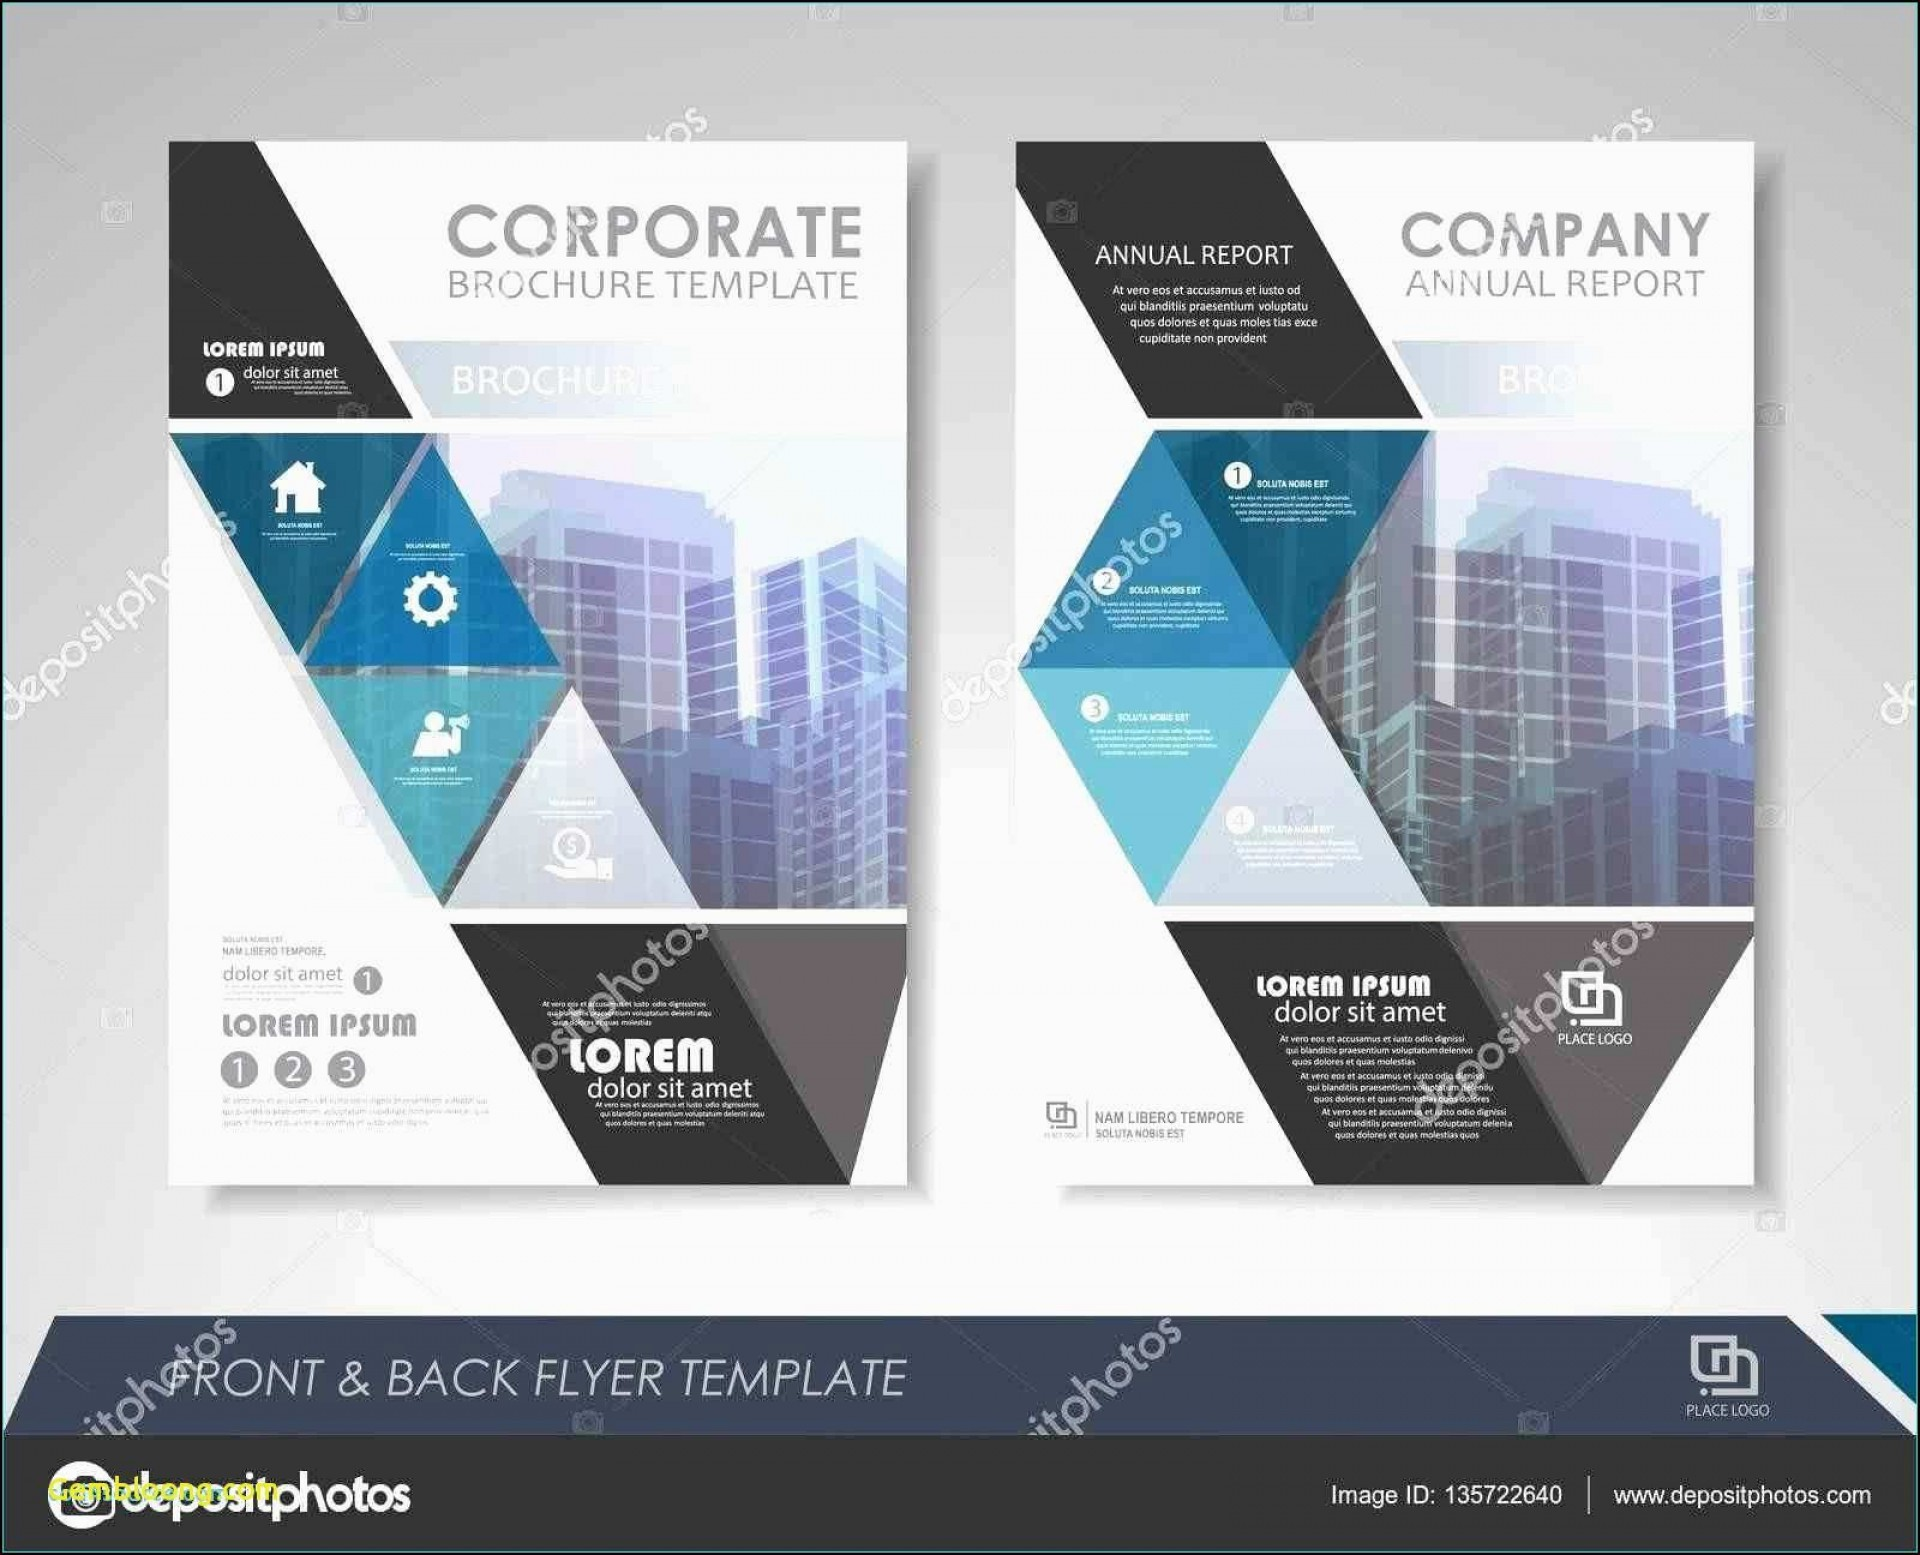 000 Archaicawful Free Brochure Template Download High Resolution  Psd Tri Fold For Word Corporate Busines1920